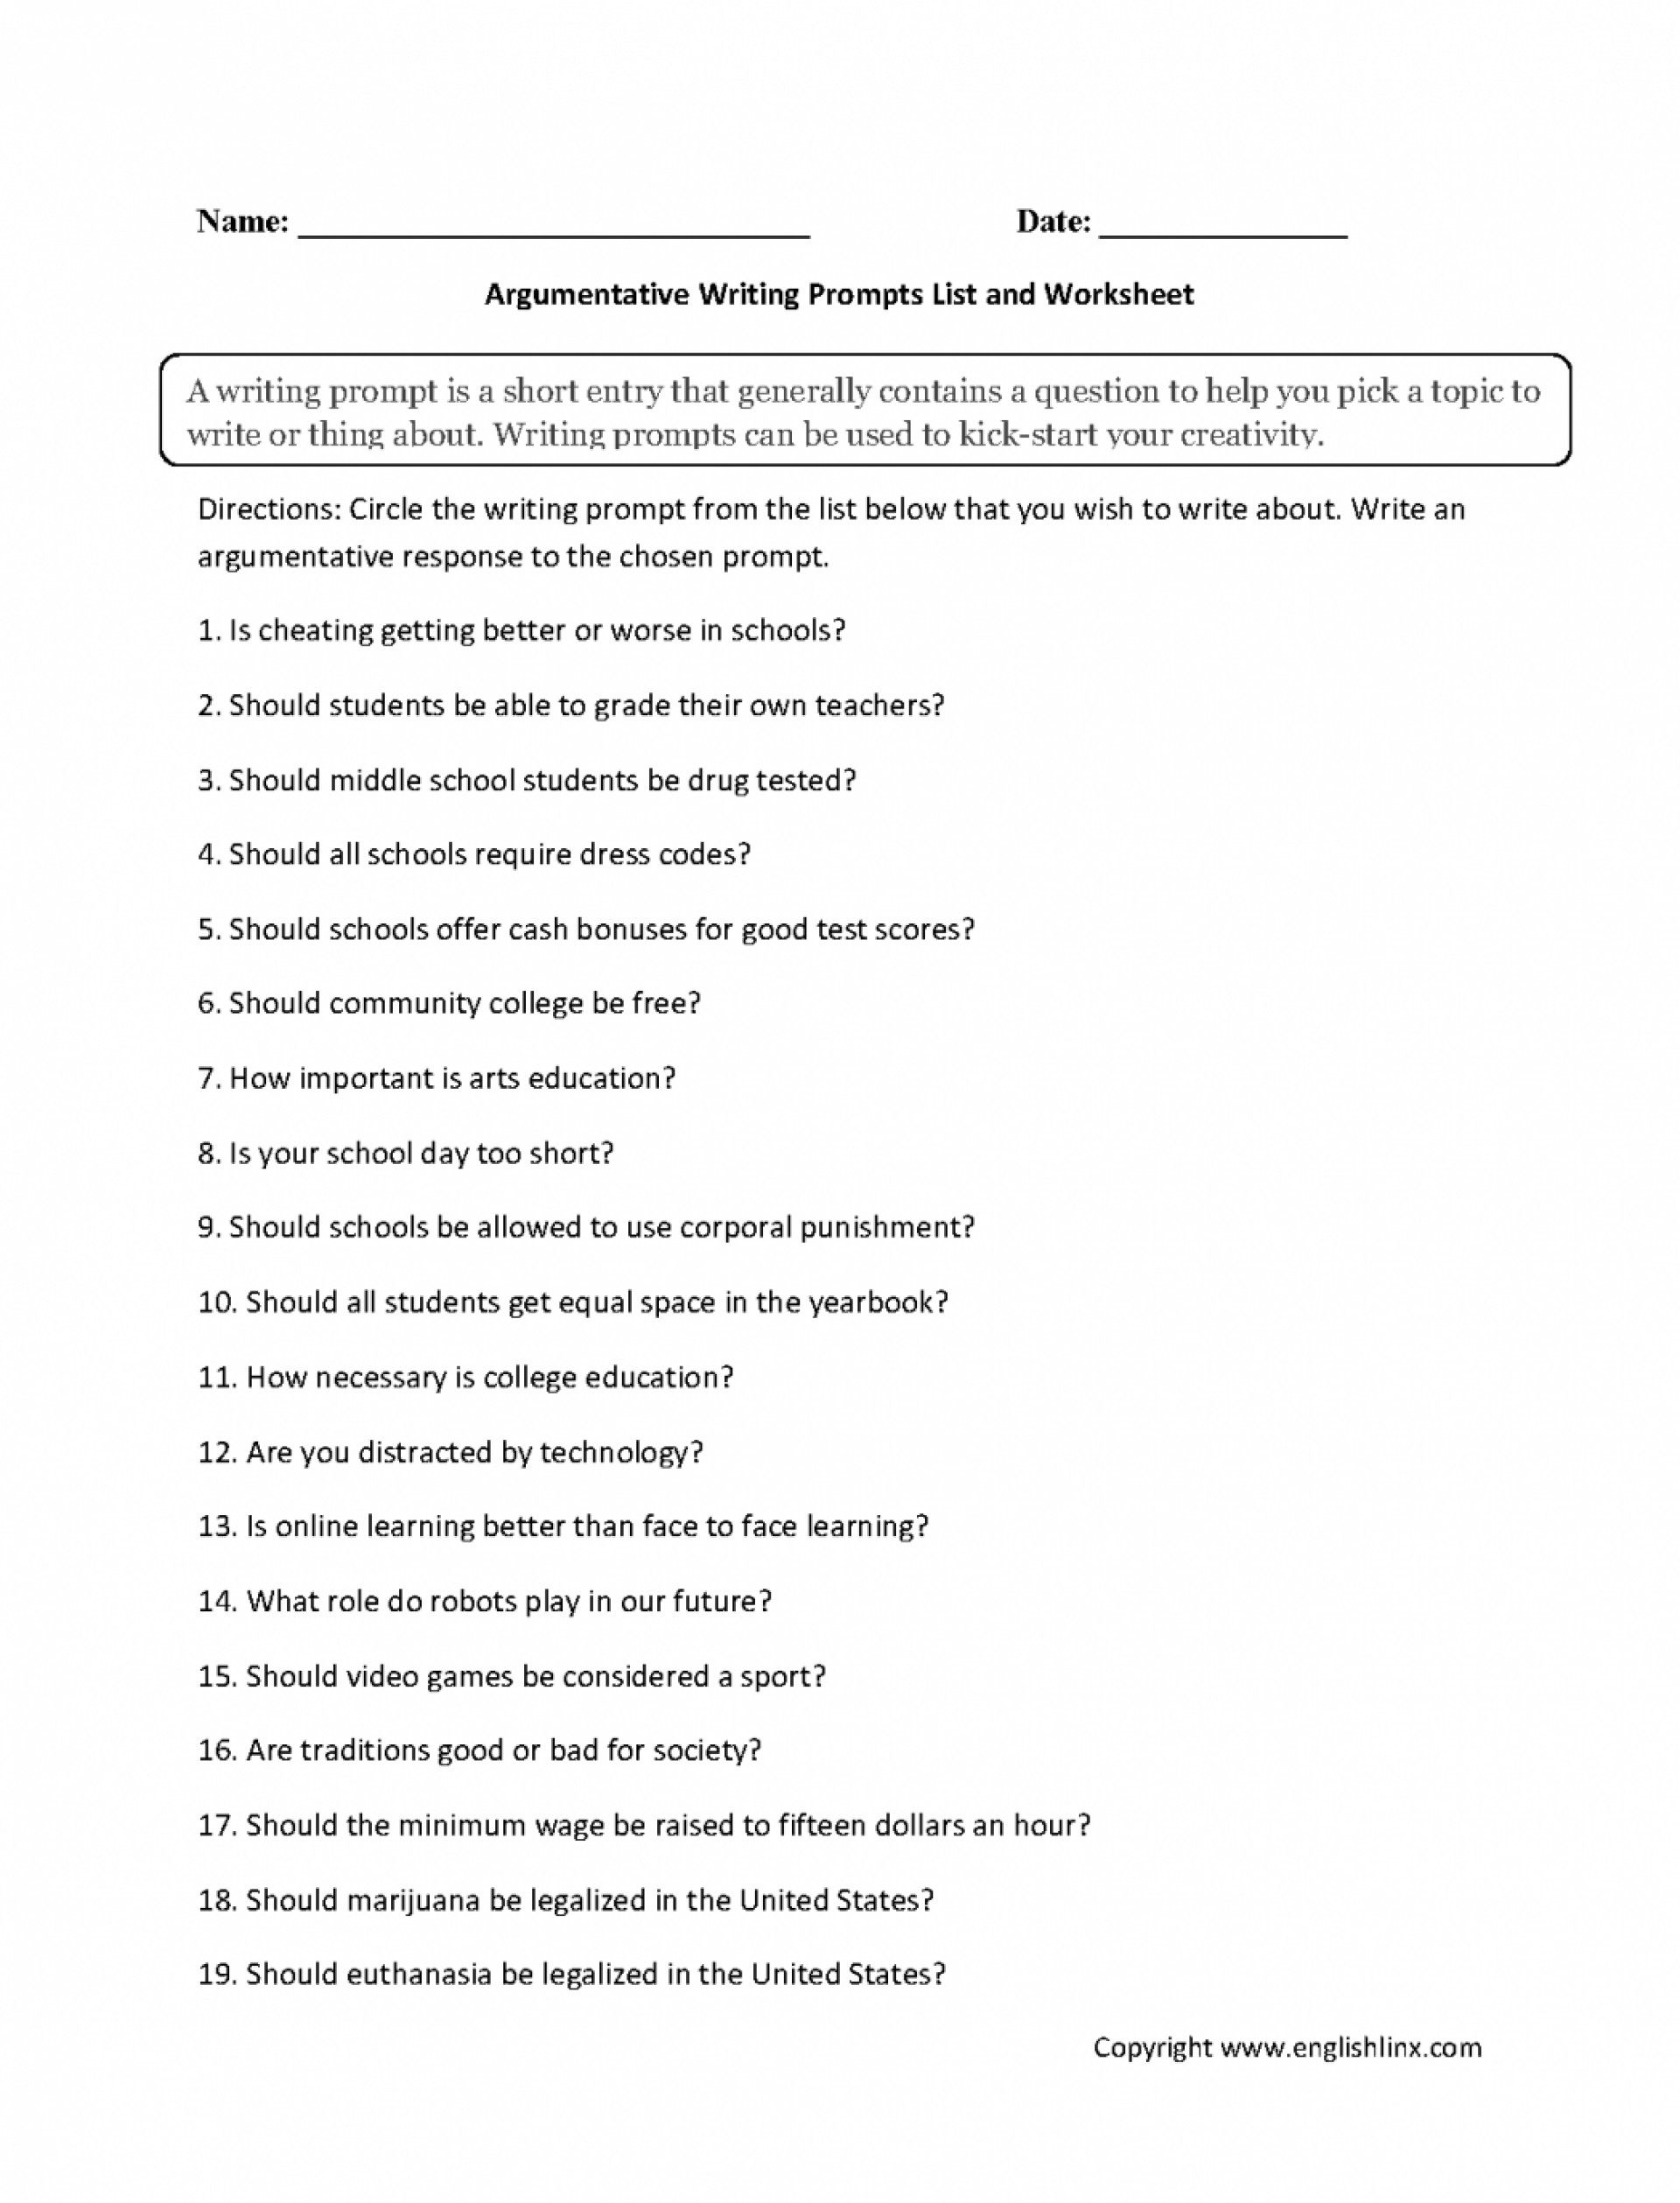 012 Essay Example Topics For Angumentative Writing Prompts Worksheets List Of Research Work Middle Schoolgumentativepersuasive Great Gatsby Easy College Good 1048x1374 Magnificent An Argumentative Essays High School 1920